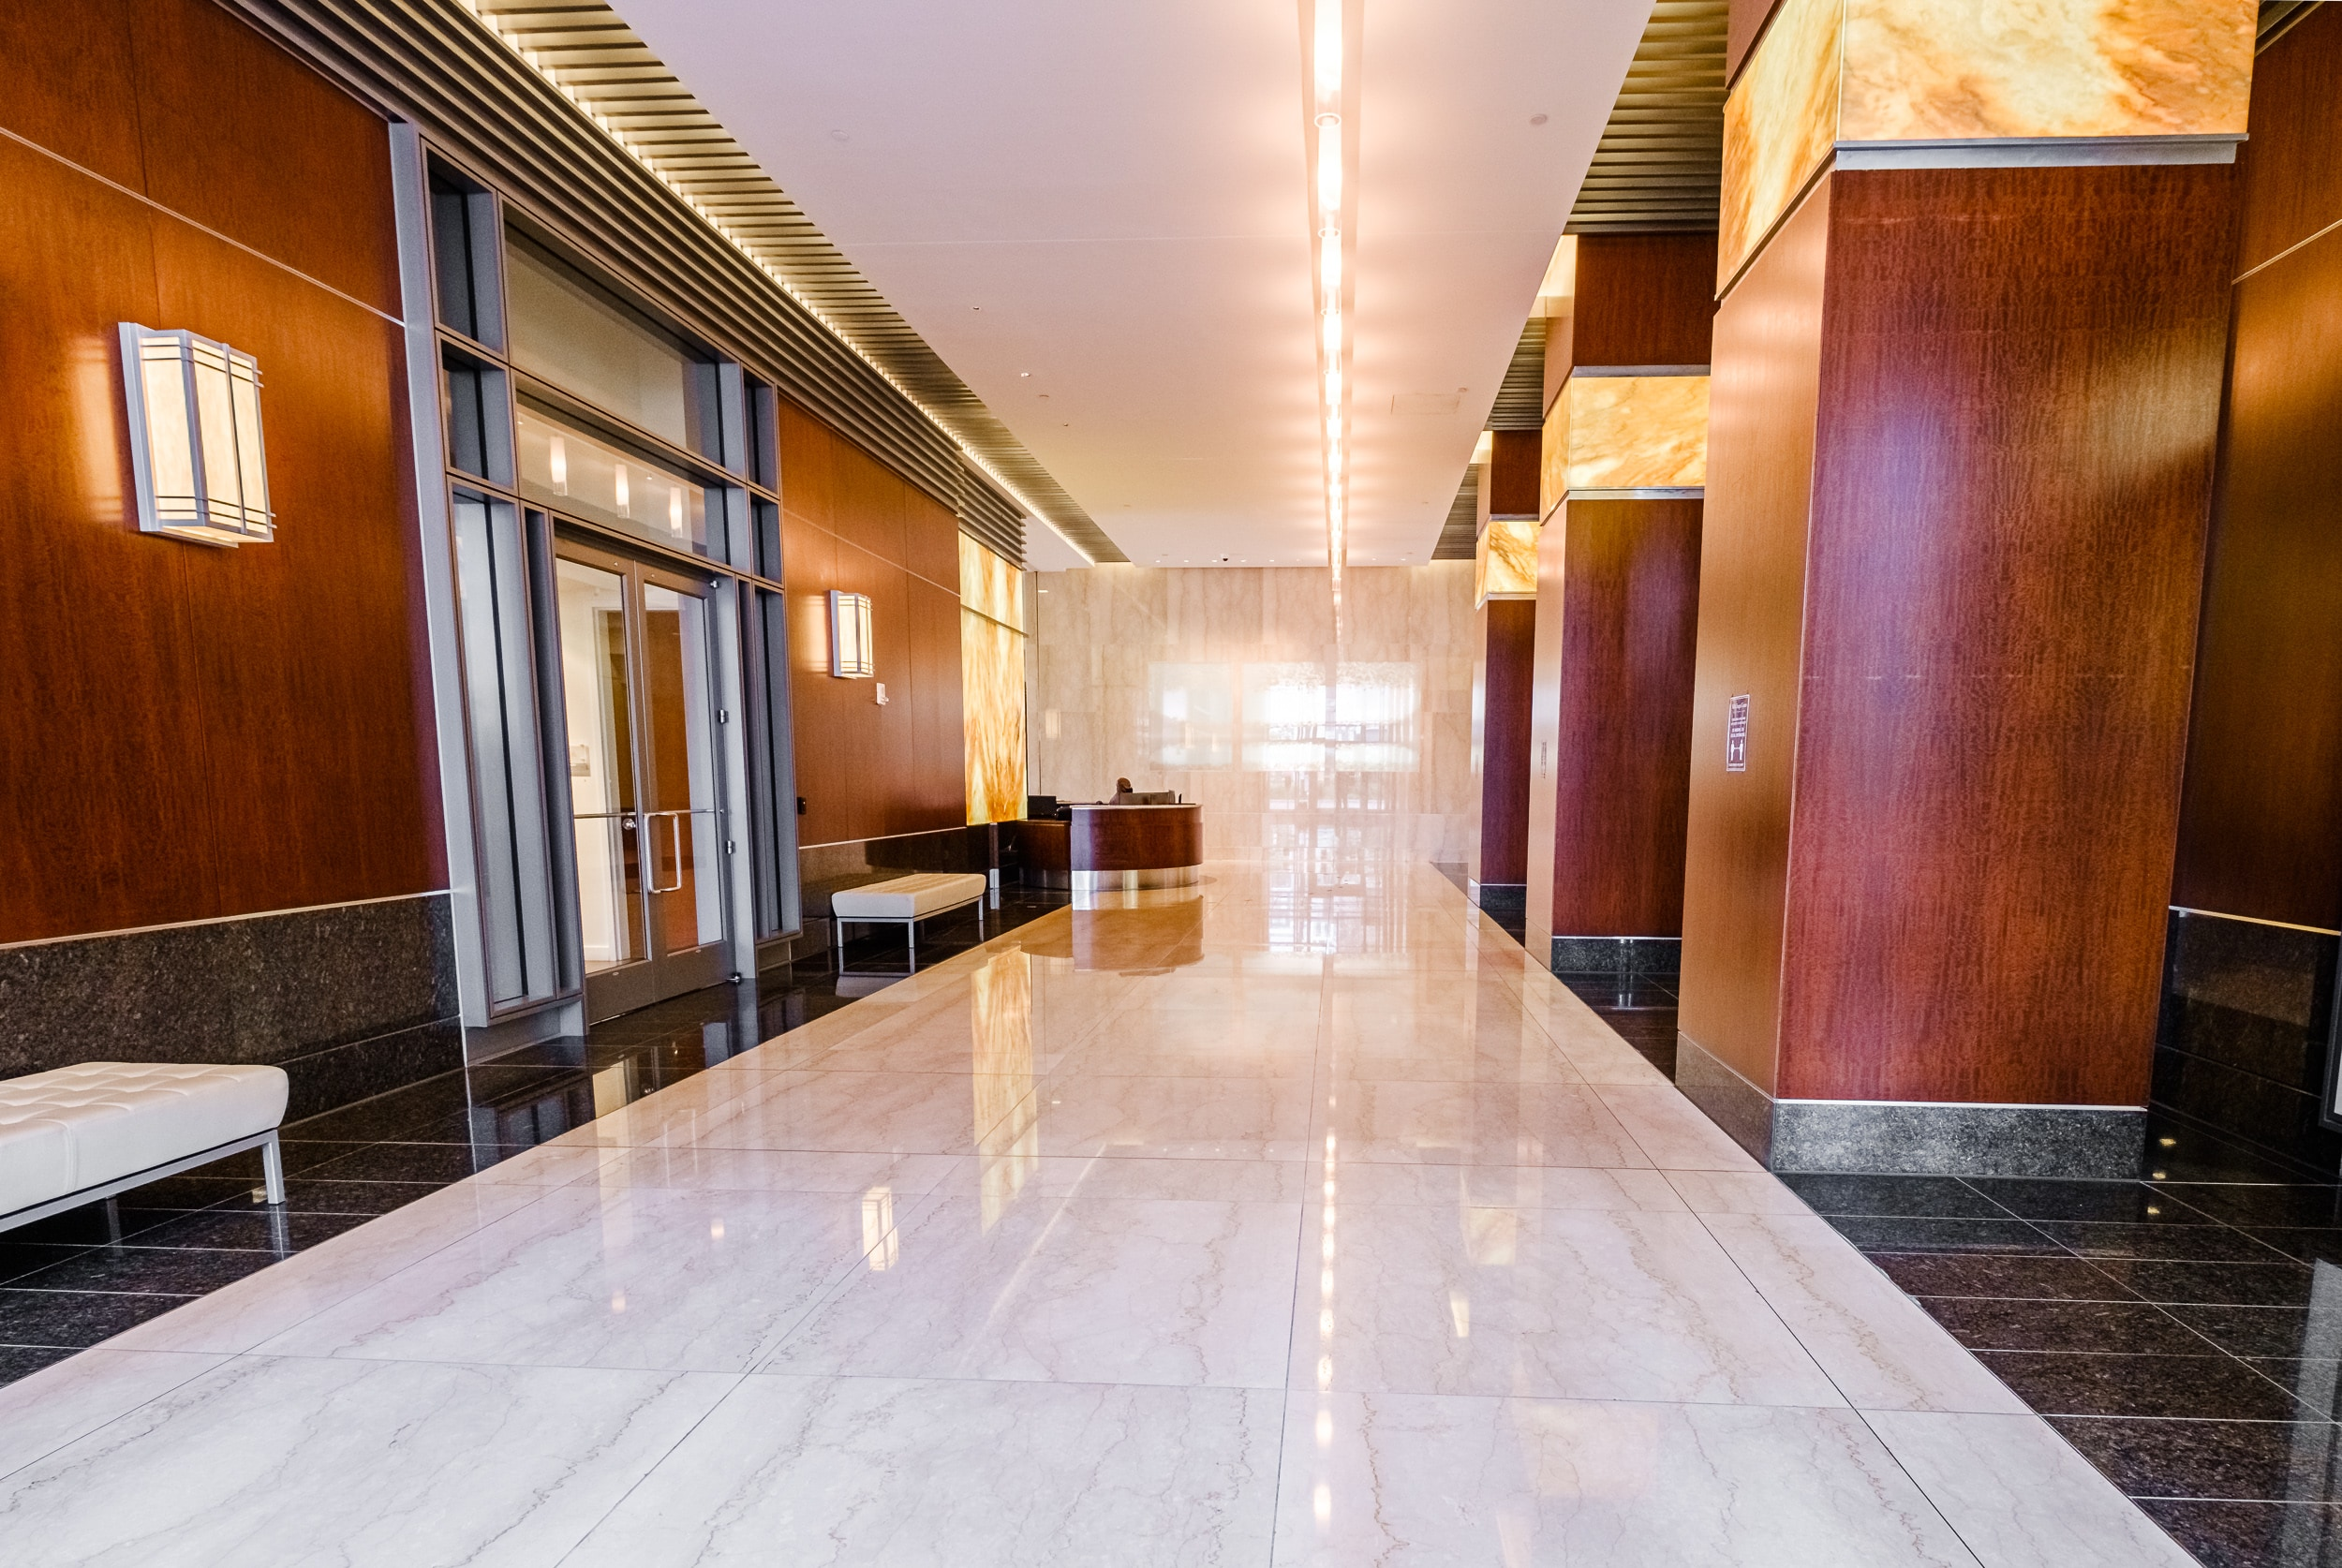 OSS Wells Fargo Center Lobby. Large and brightly-lit main lobby of building with stone floors and modern decor.